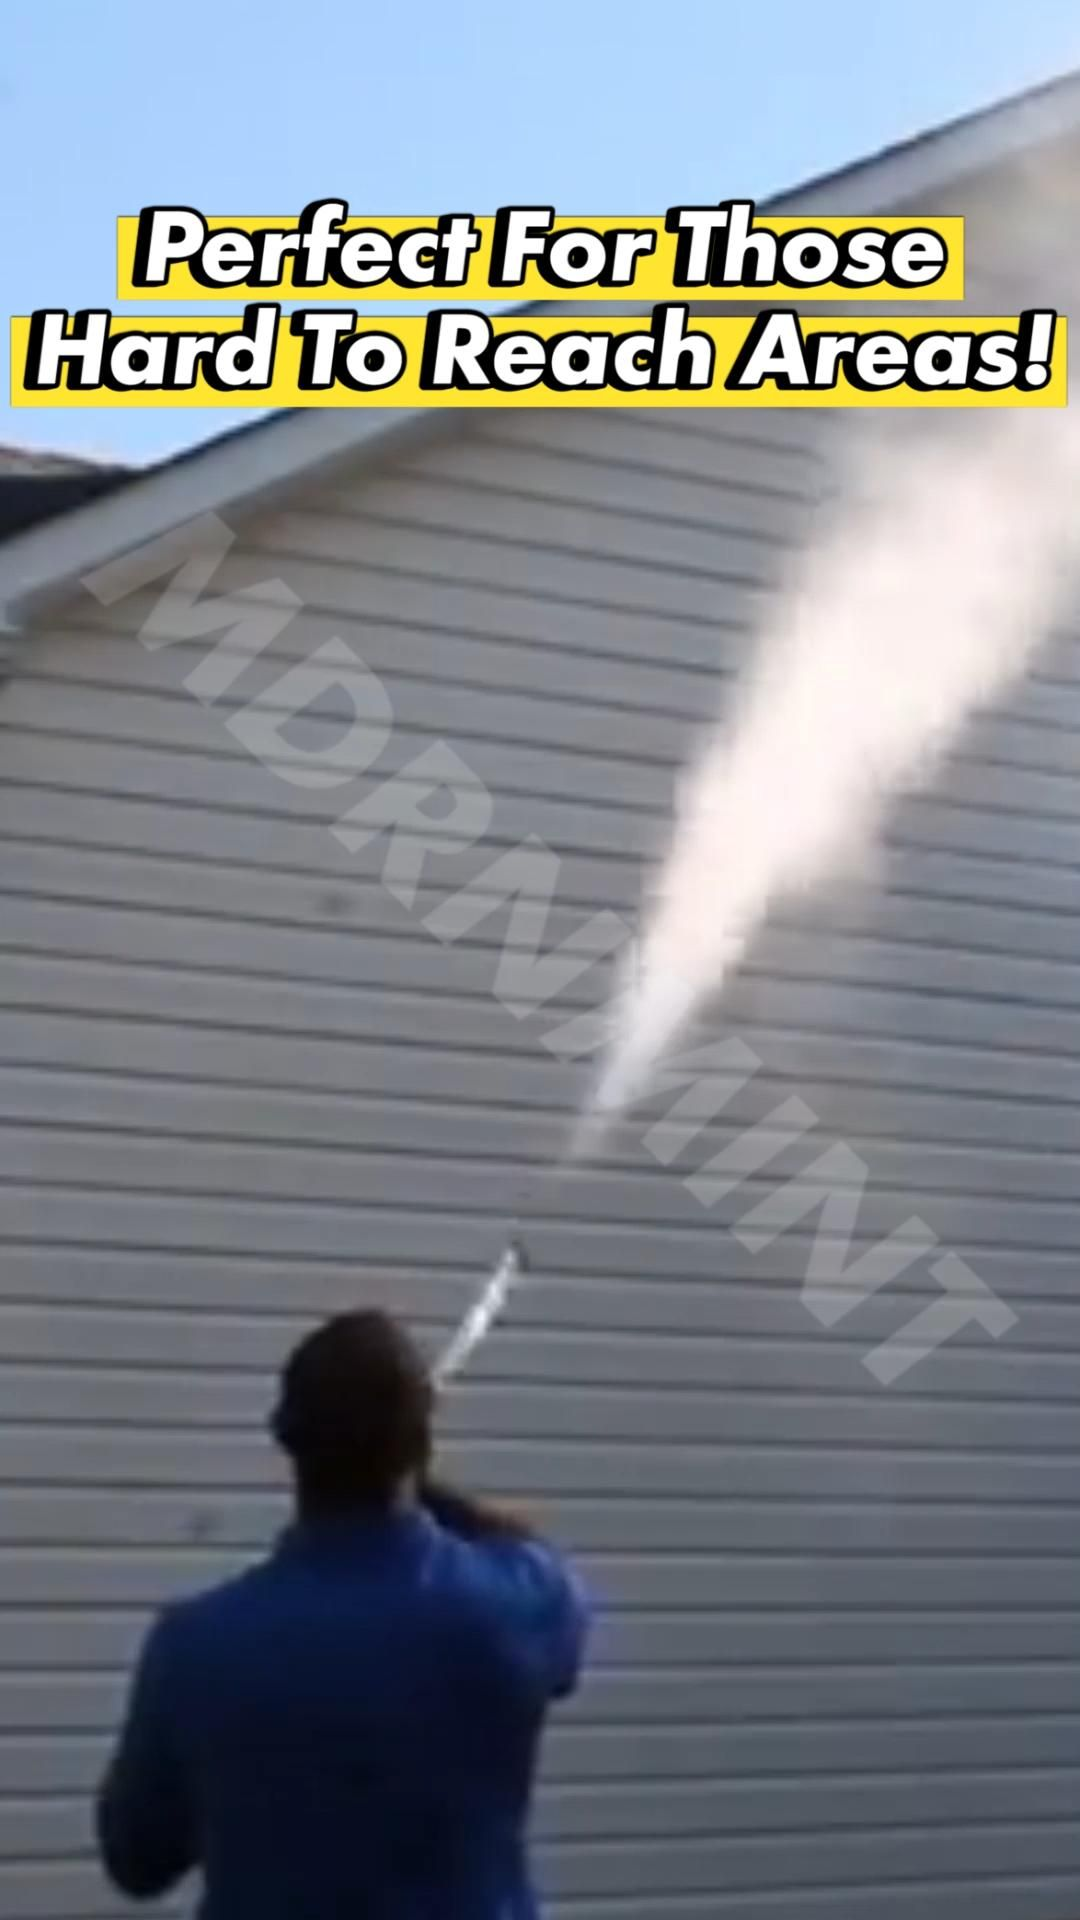 Foamking 2 In 1 Pressure Washer Video Video In 2020 Cleaning Fun Diy Home Cleaning Car Cleaning Hacks